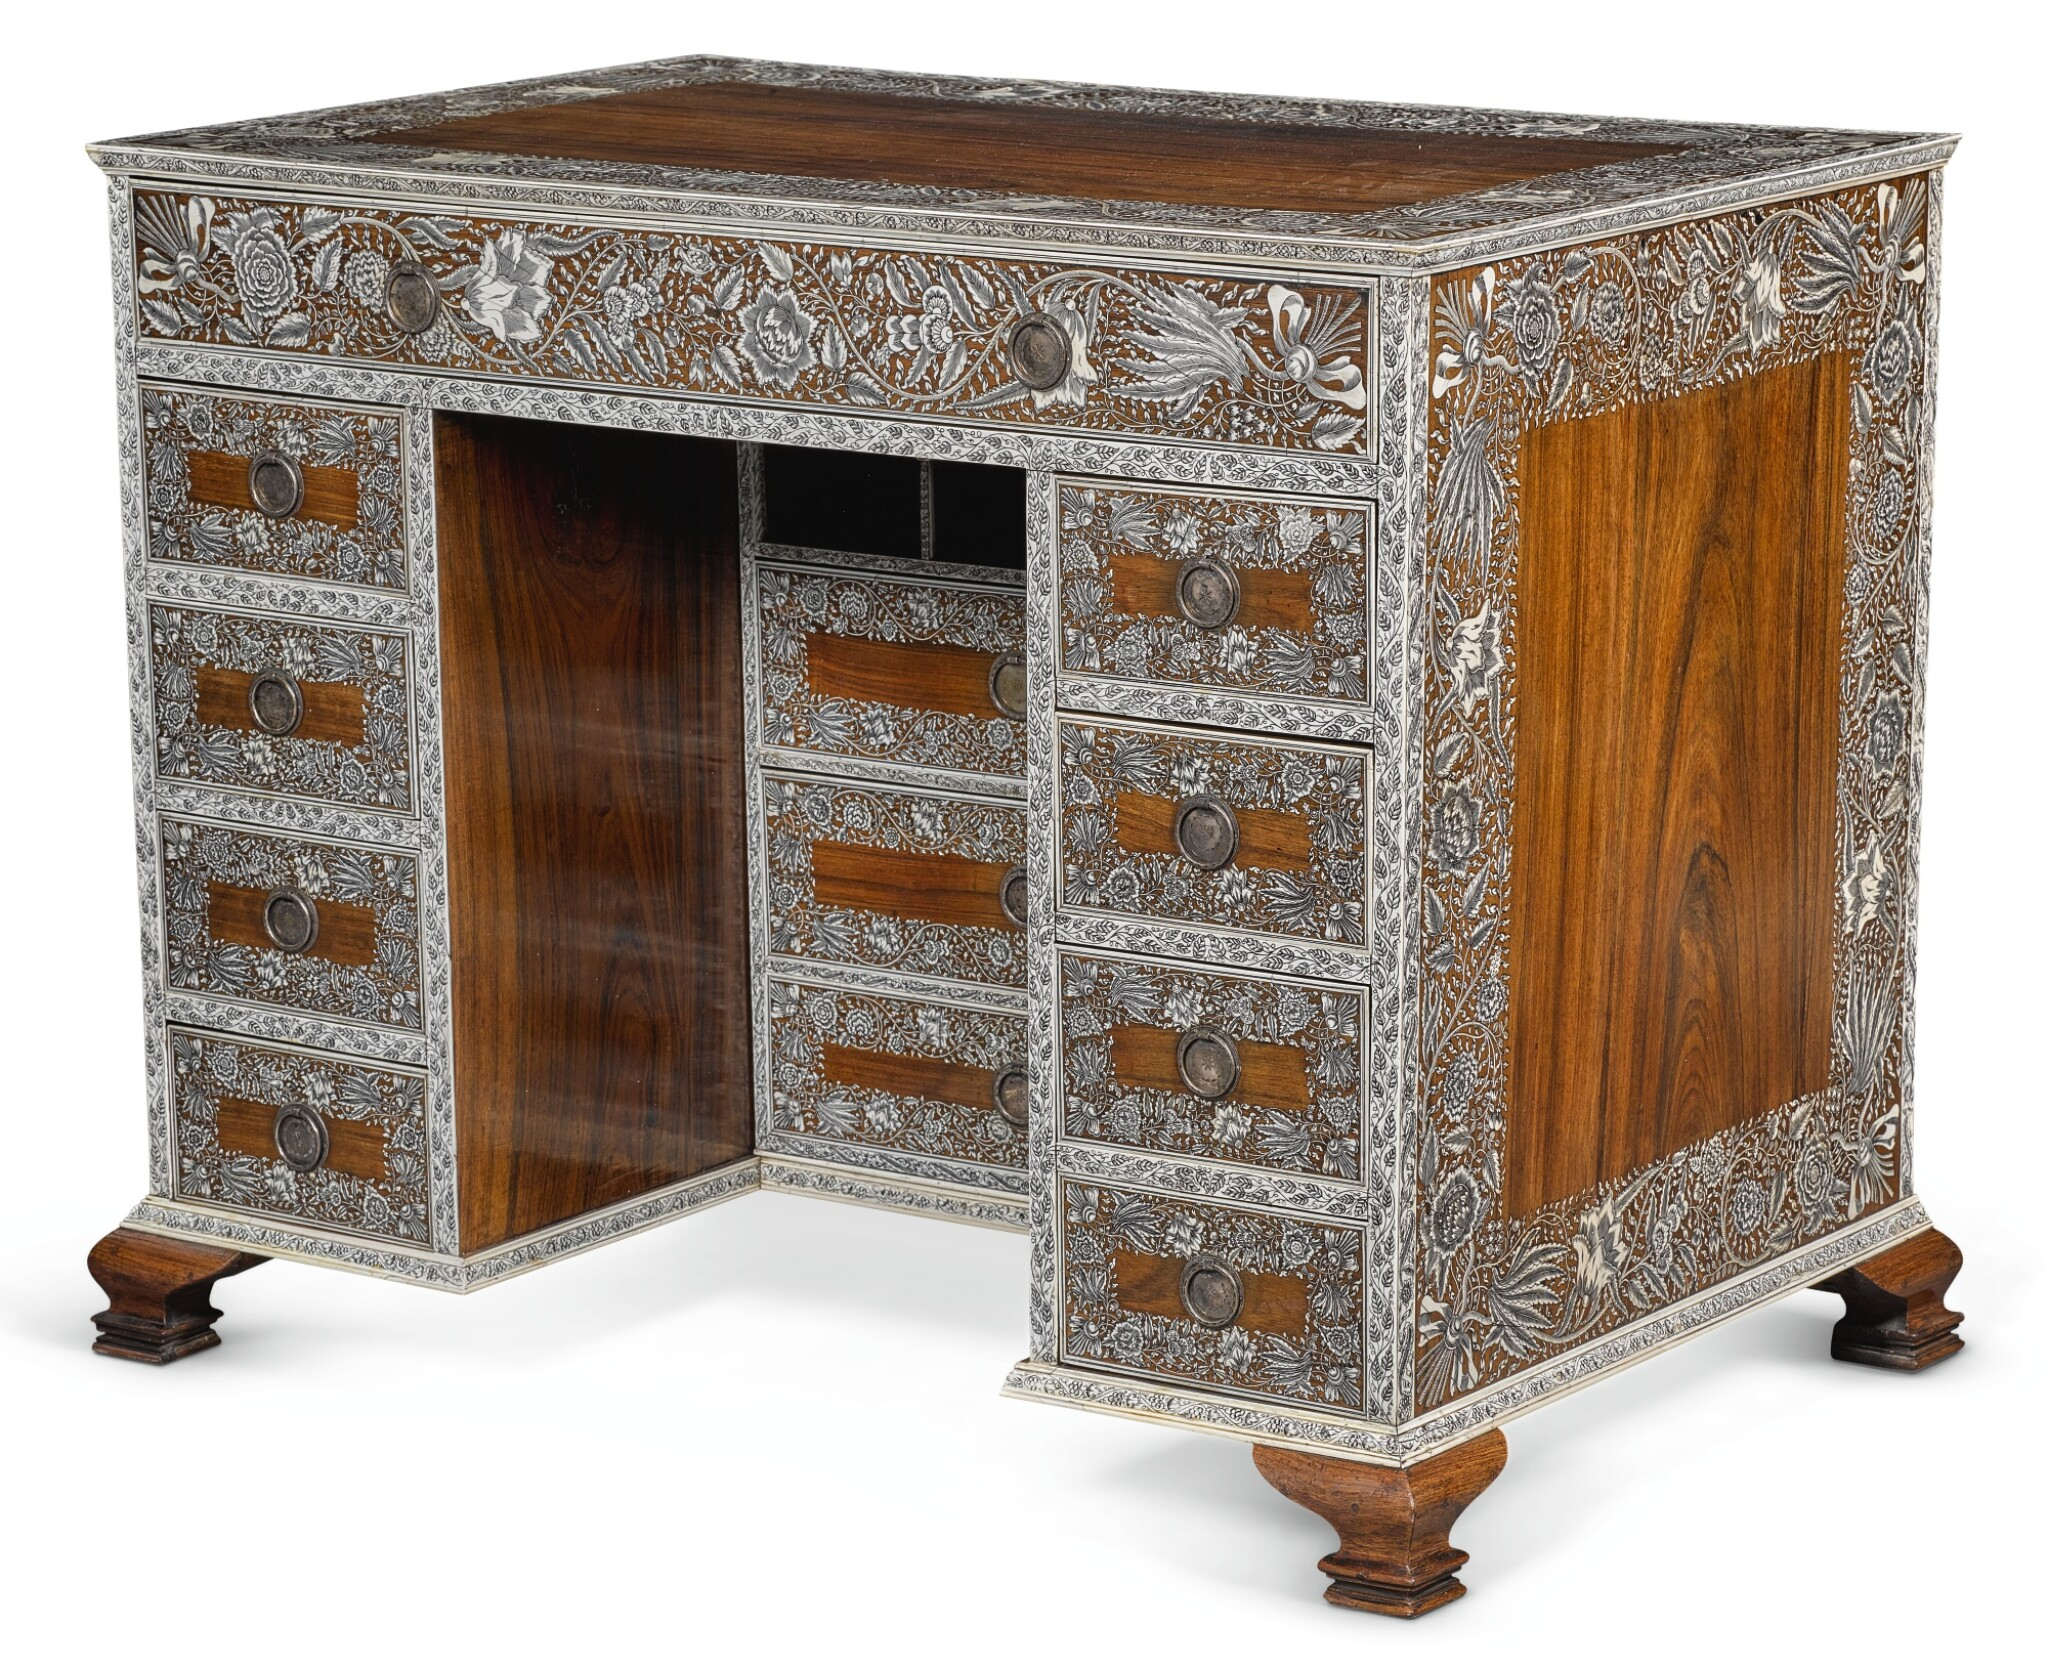 View full screen - View 1 of Lot 175. AN ANGLO-INDIAN IVORY INLAID ROSEWOOD WRITING OR DRESSING TABLE, VIZAGAPATAM, MID-18TH CENTURY.